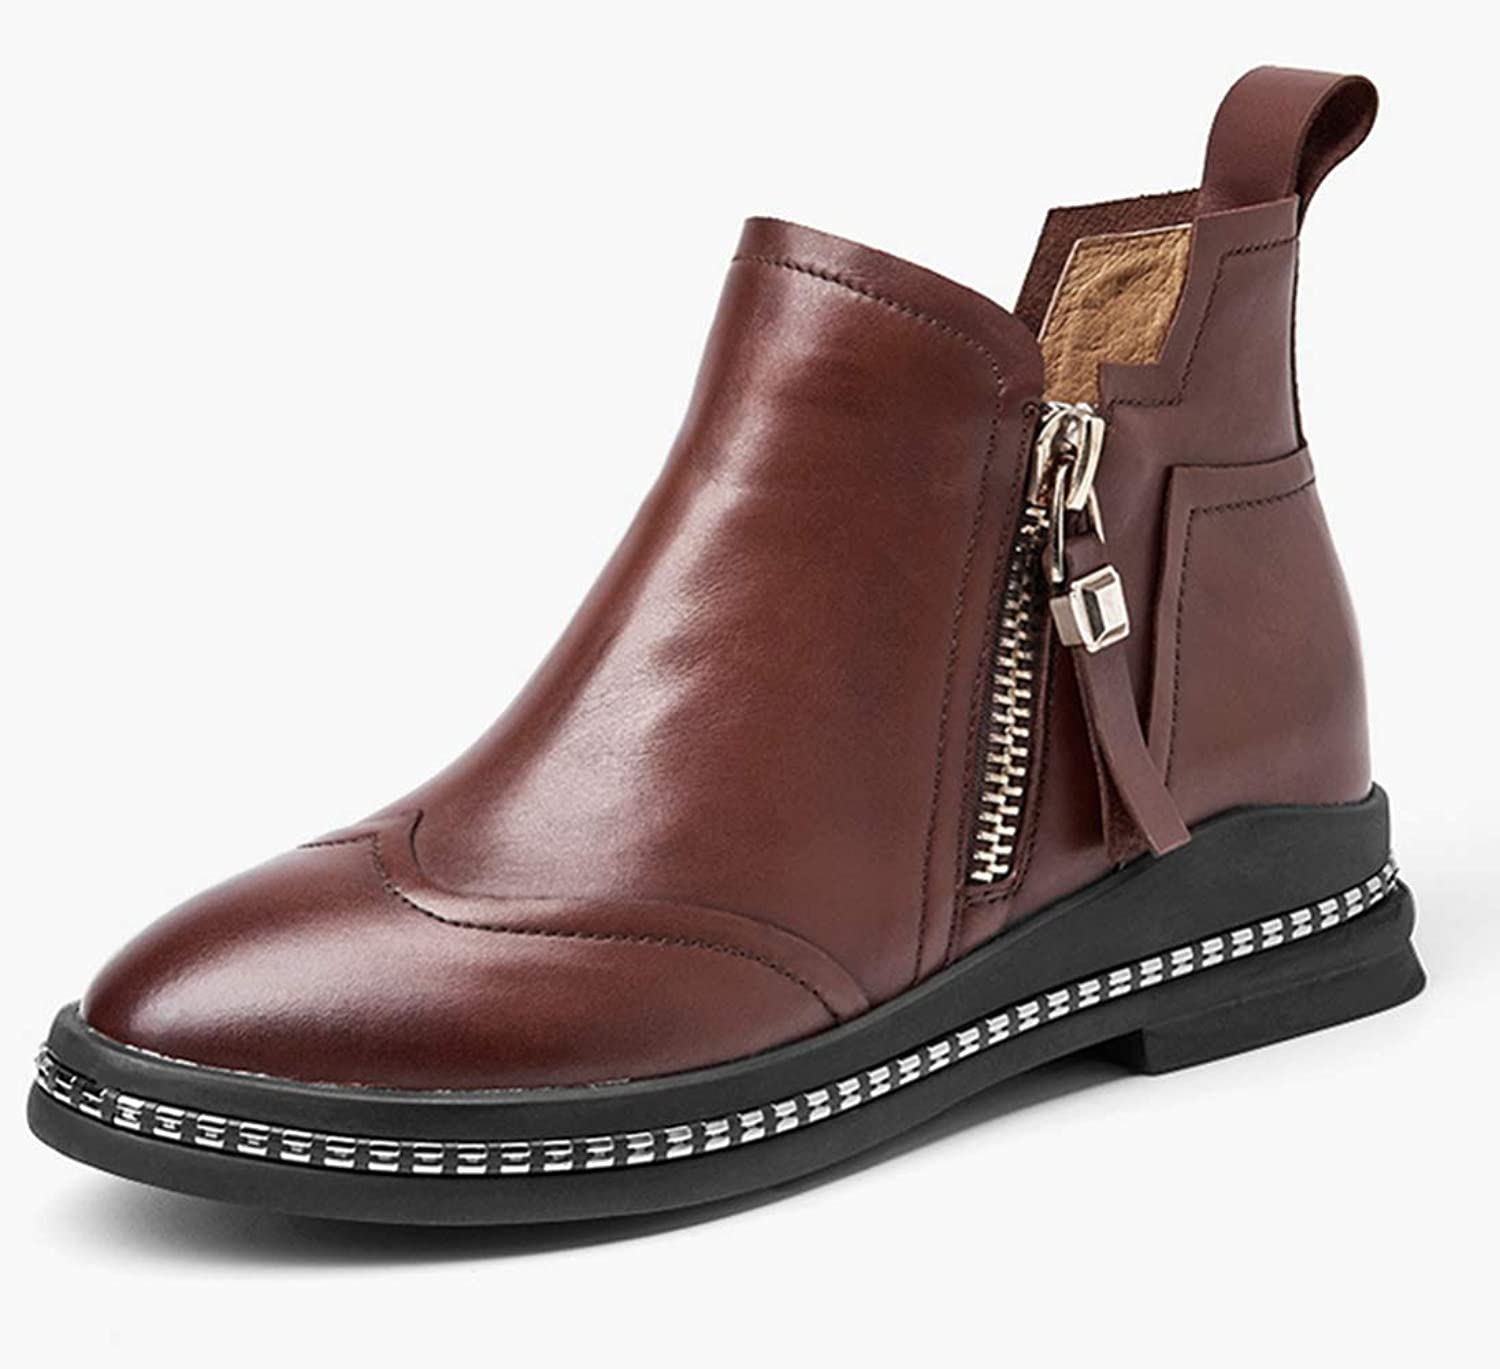 Shiney New Women's Leather Autumn New Chelsea Booties Round Head Zip Martin Boots British Shorts Ankle Boots